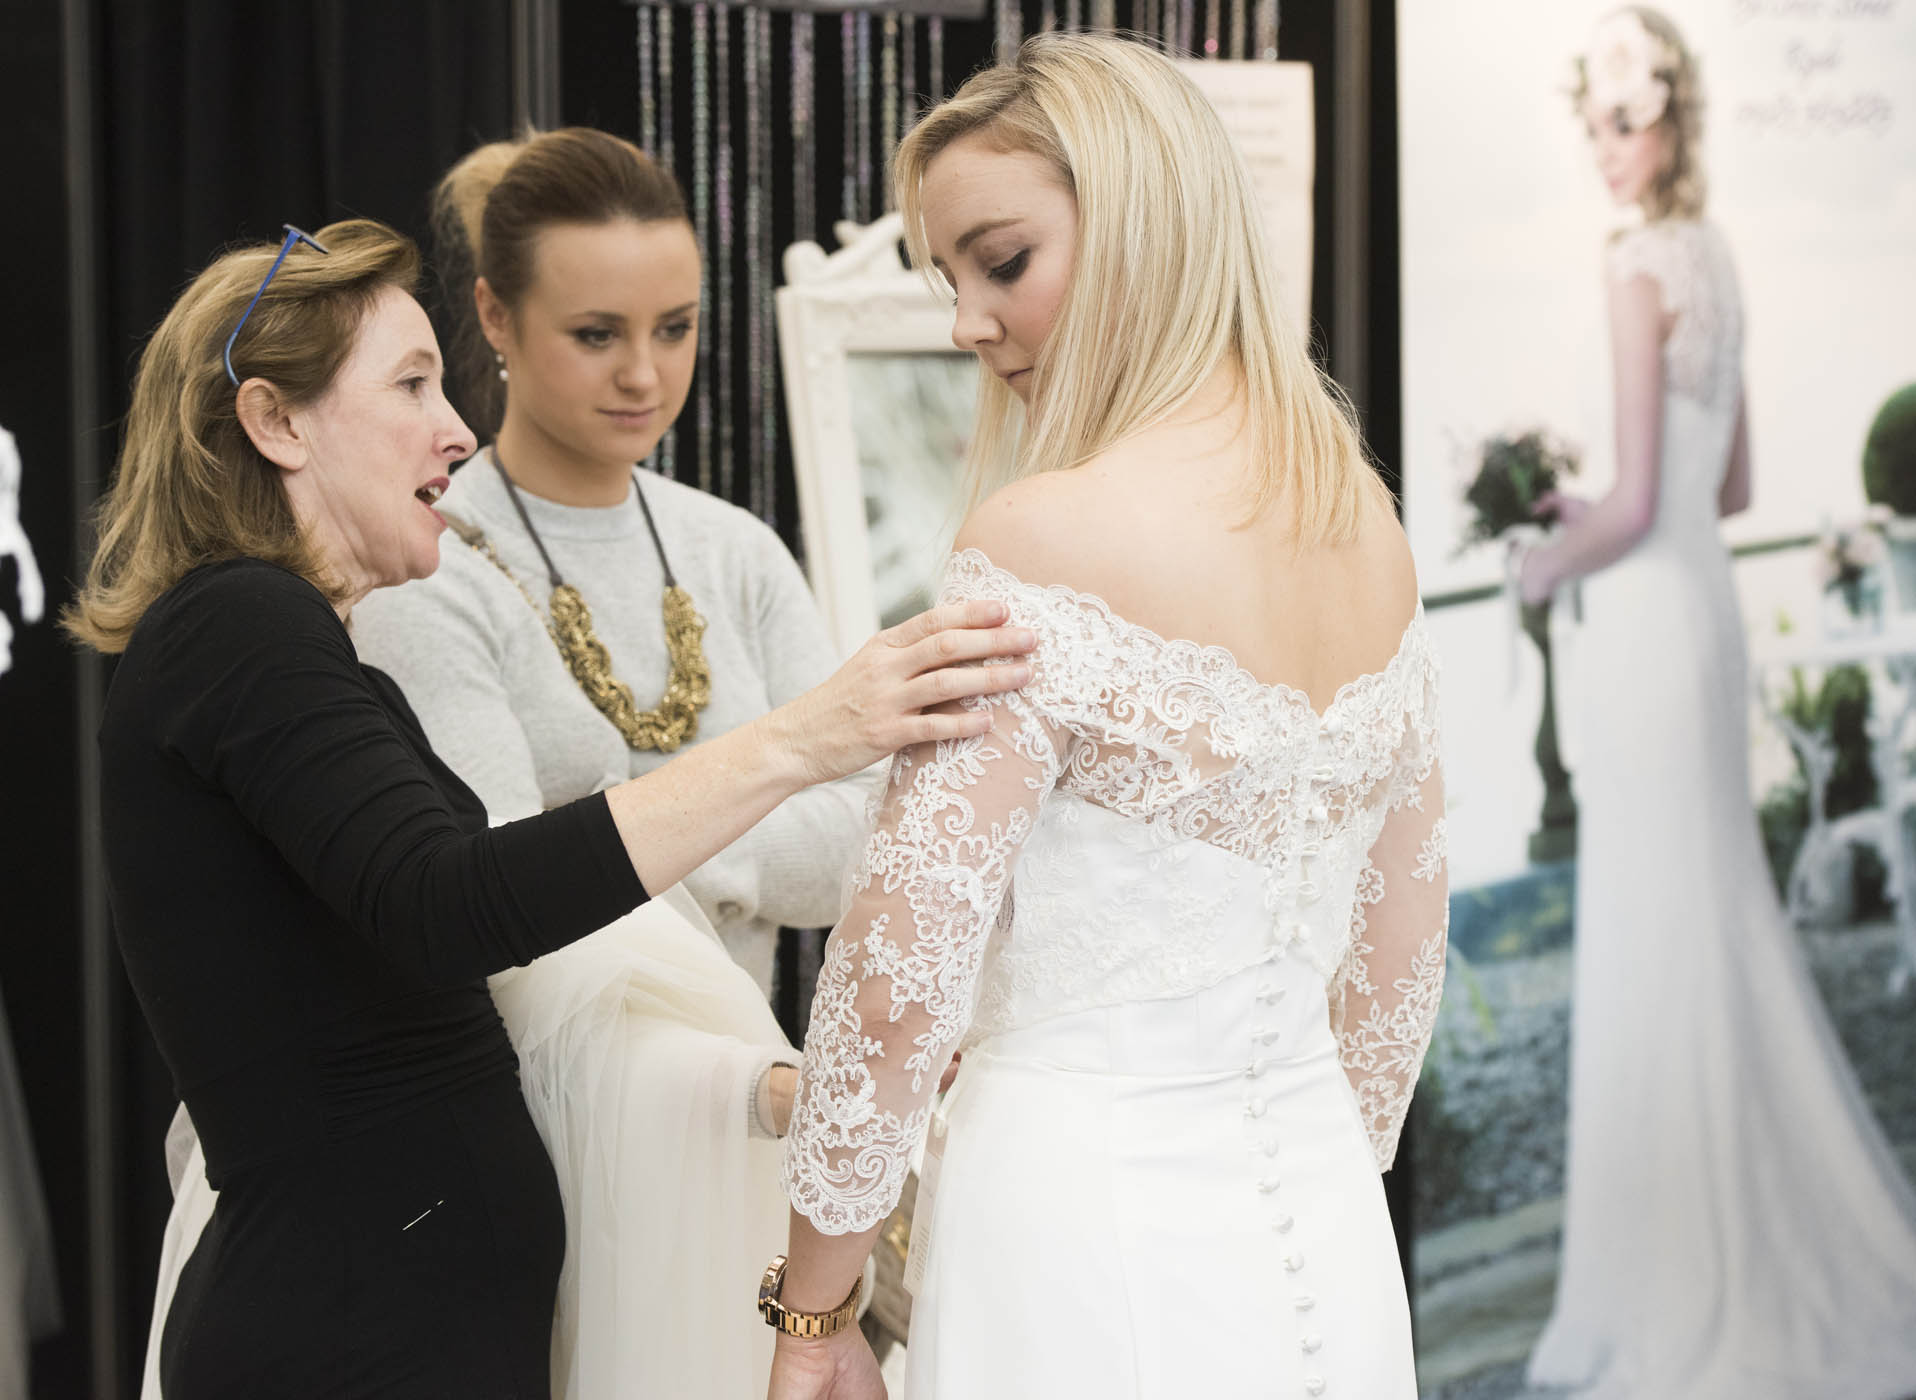 21st 22nd October Excel London 28th 29th Manchester Central Suppliers Event The National Wedding Show